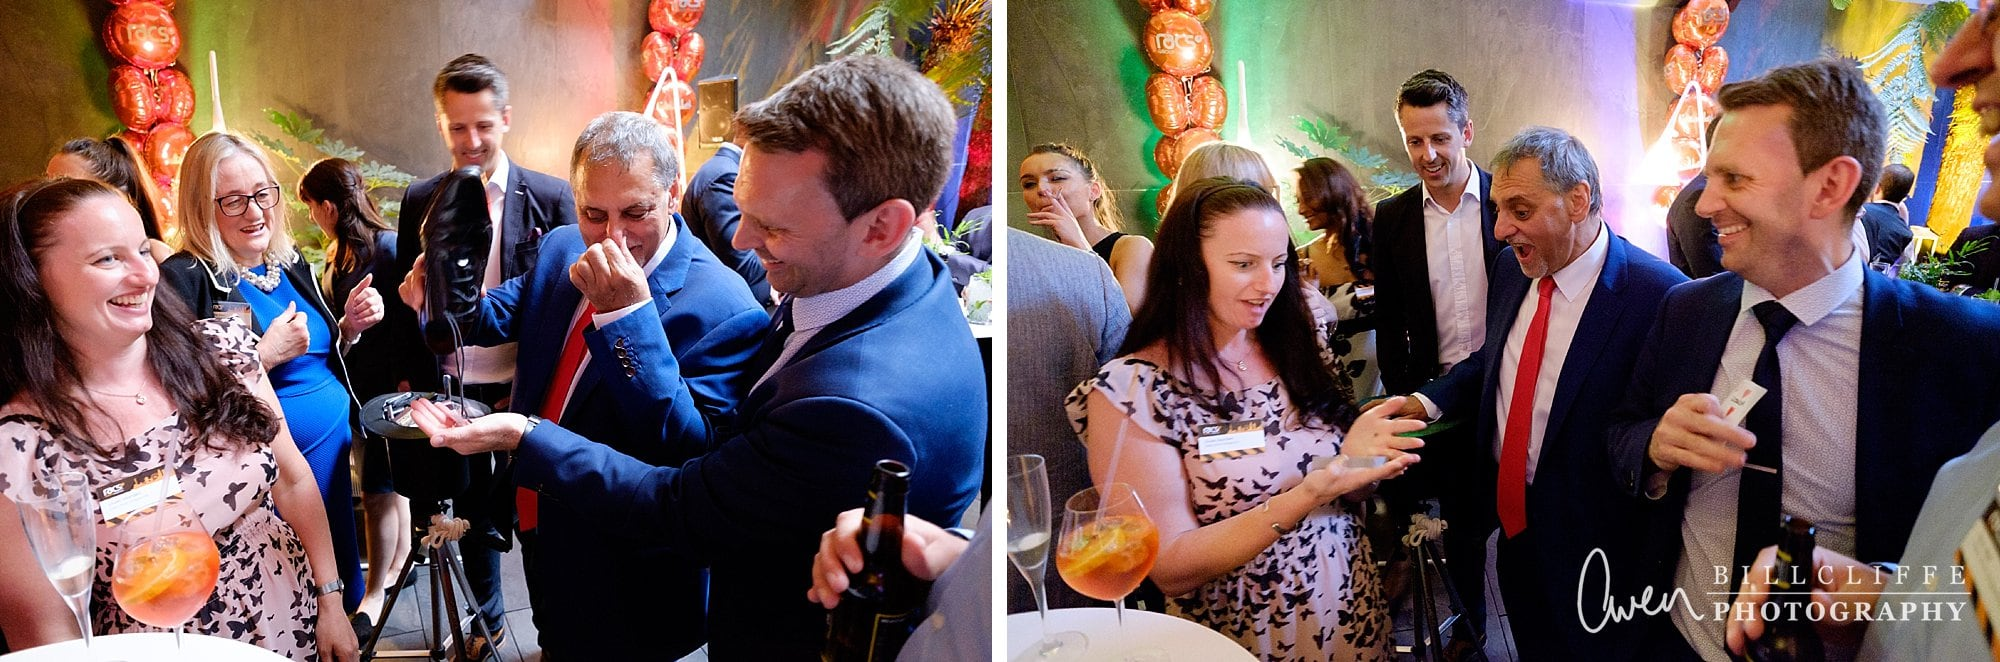 london wedding photographer magician lee smith 015 - Event Entertainer Spotlight: Lee Smith, Walkabout Magician